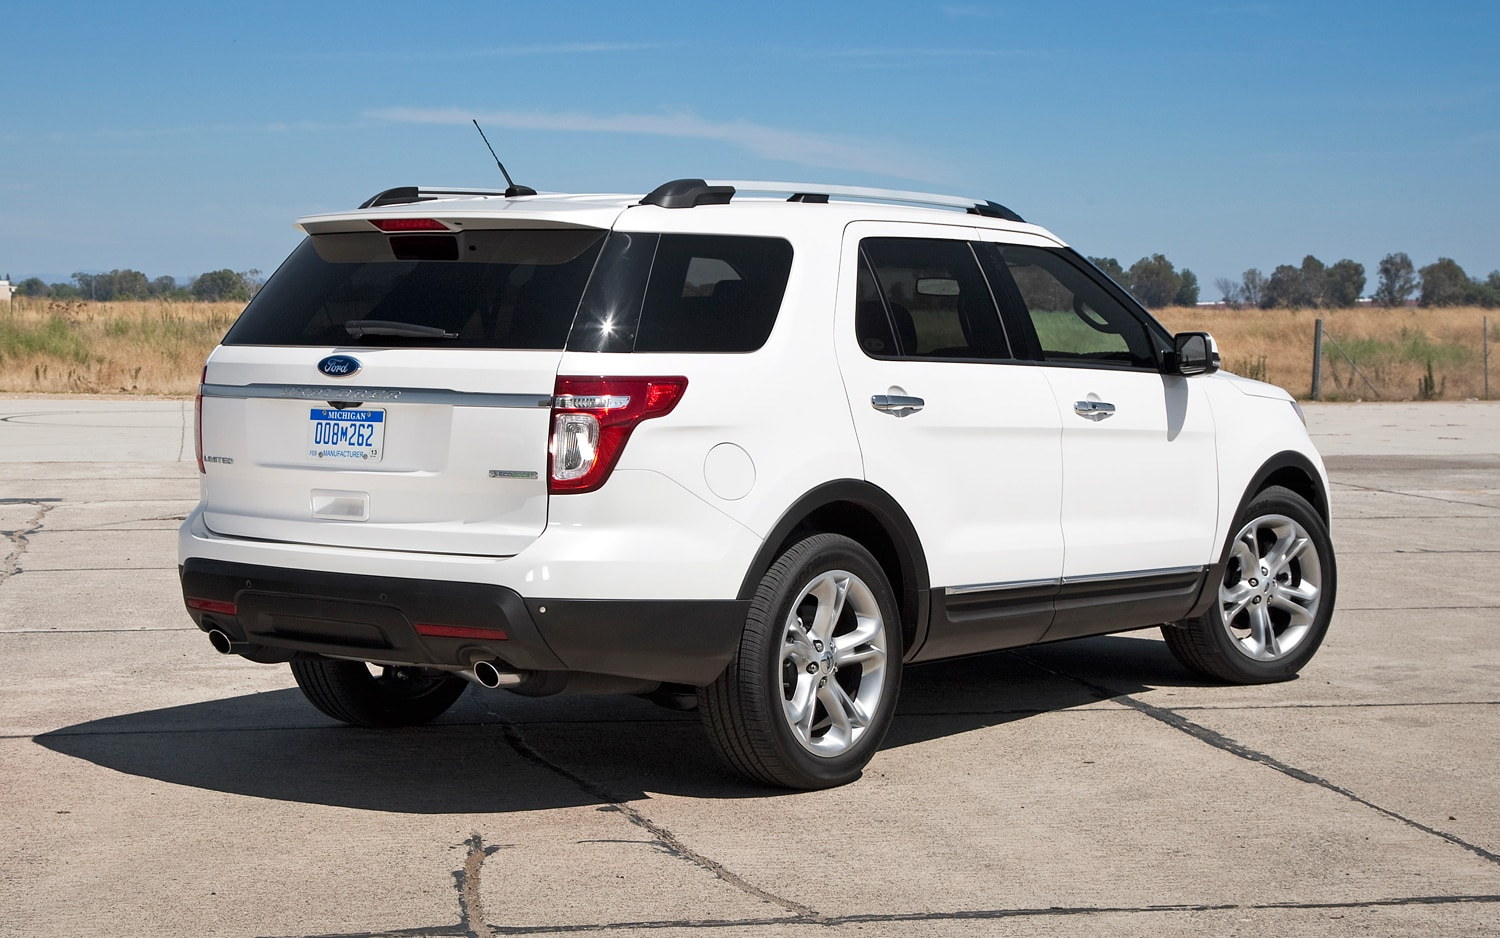 Freeze California Highway Patrol Chooses Ford Police